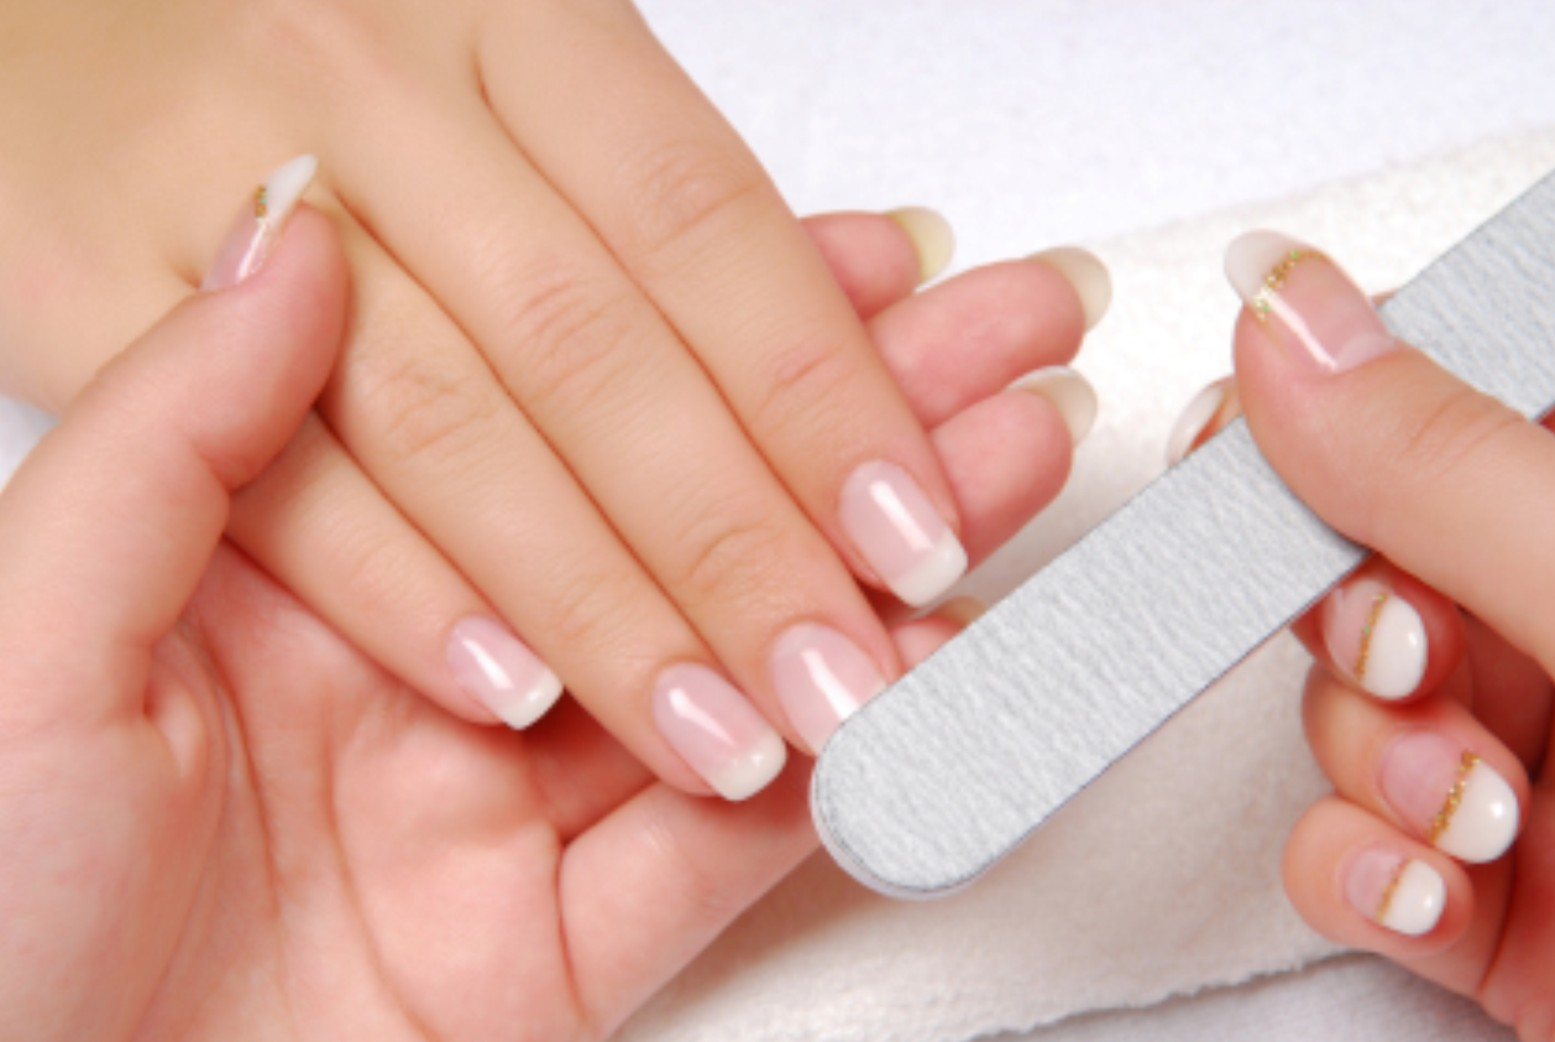 Hot manicure at home 52